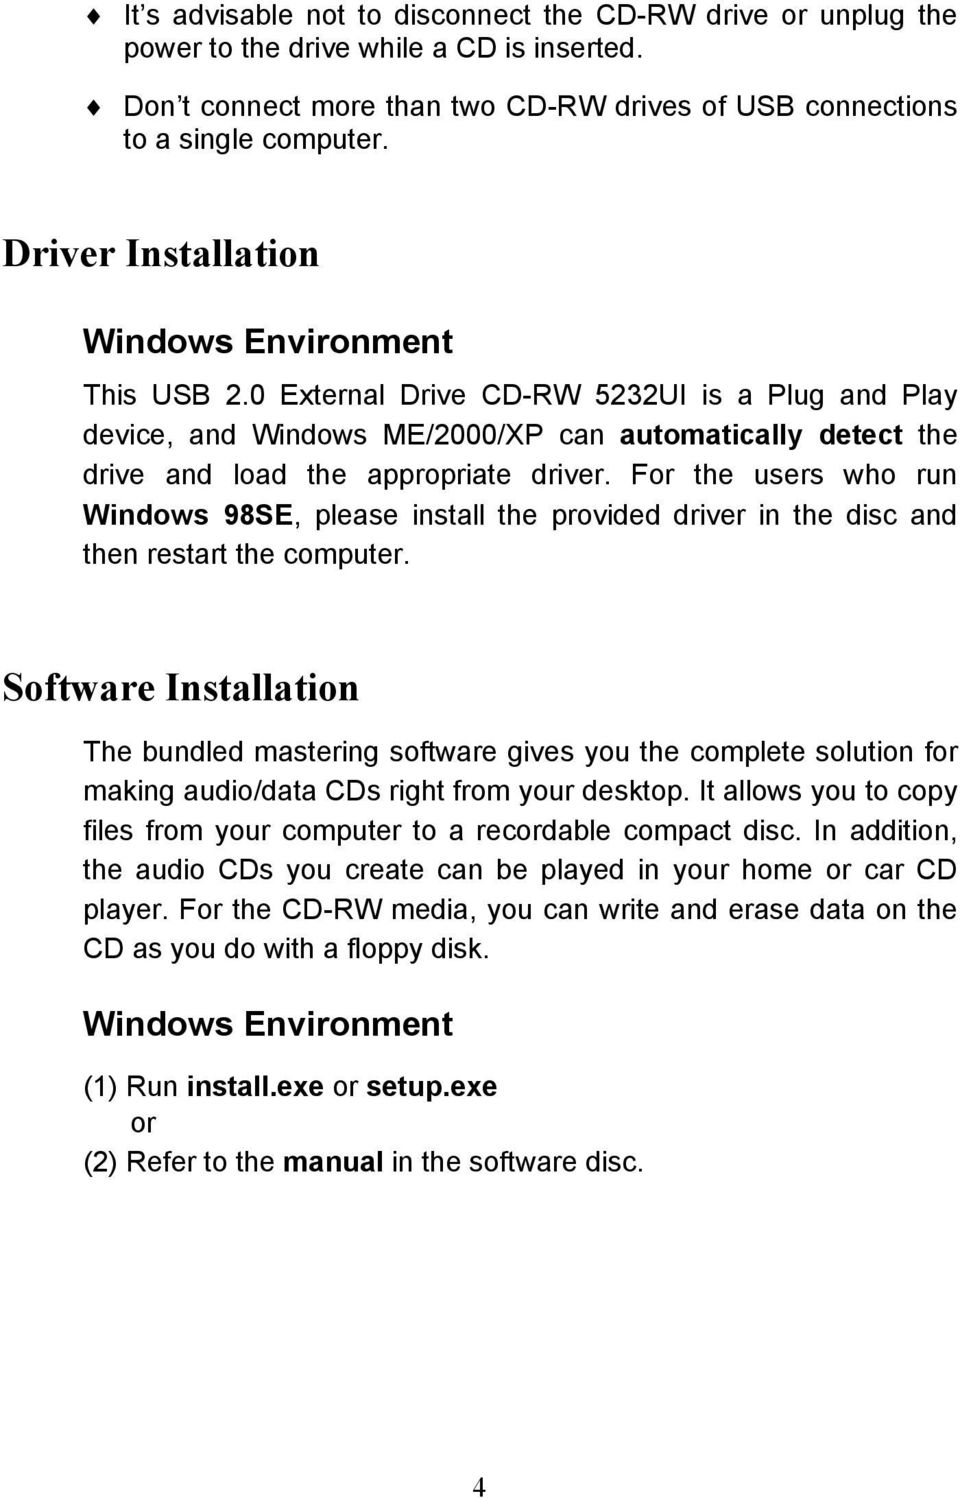 For the users who run Windows 98SE, please install the provided driver in the disc and then restart the computer.